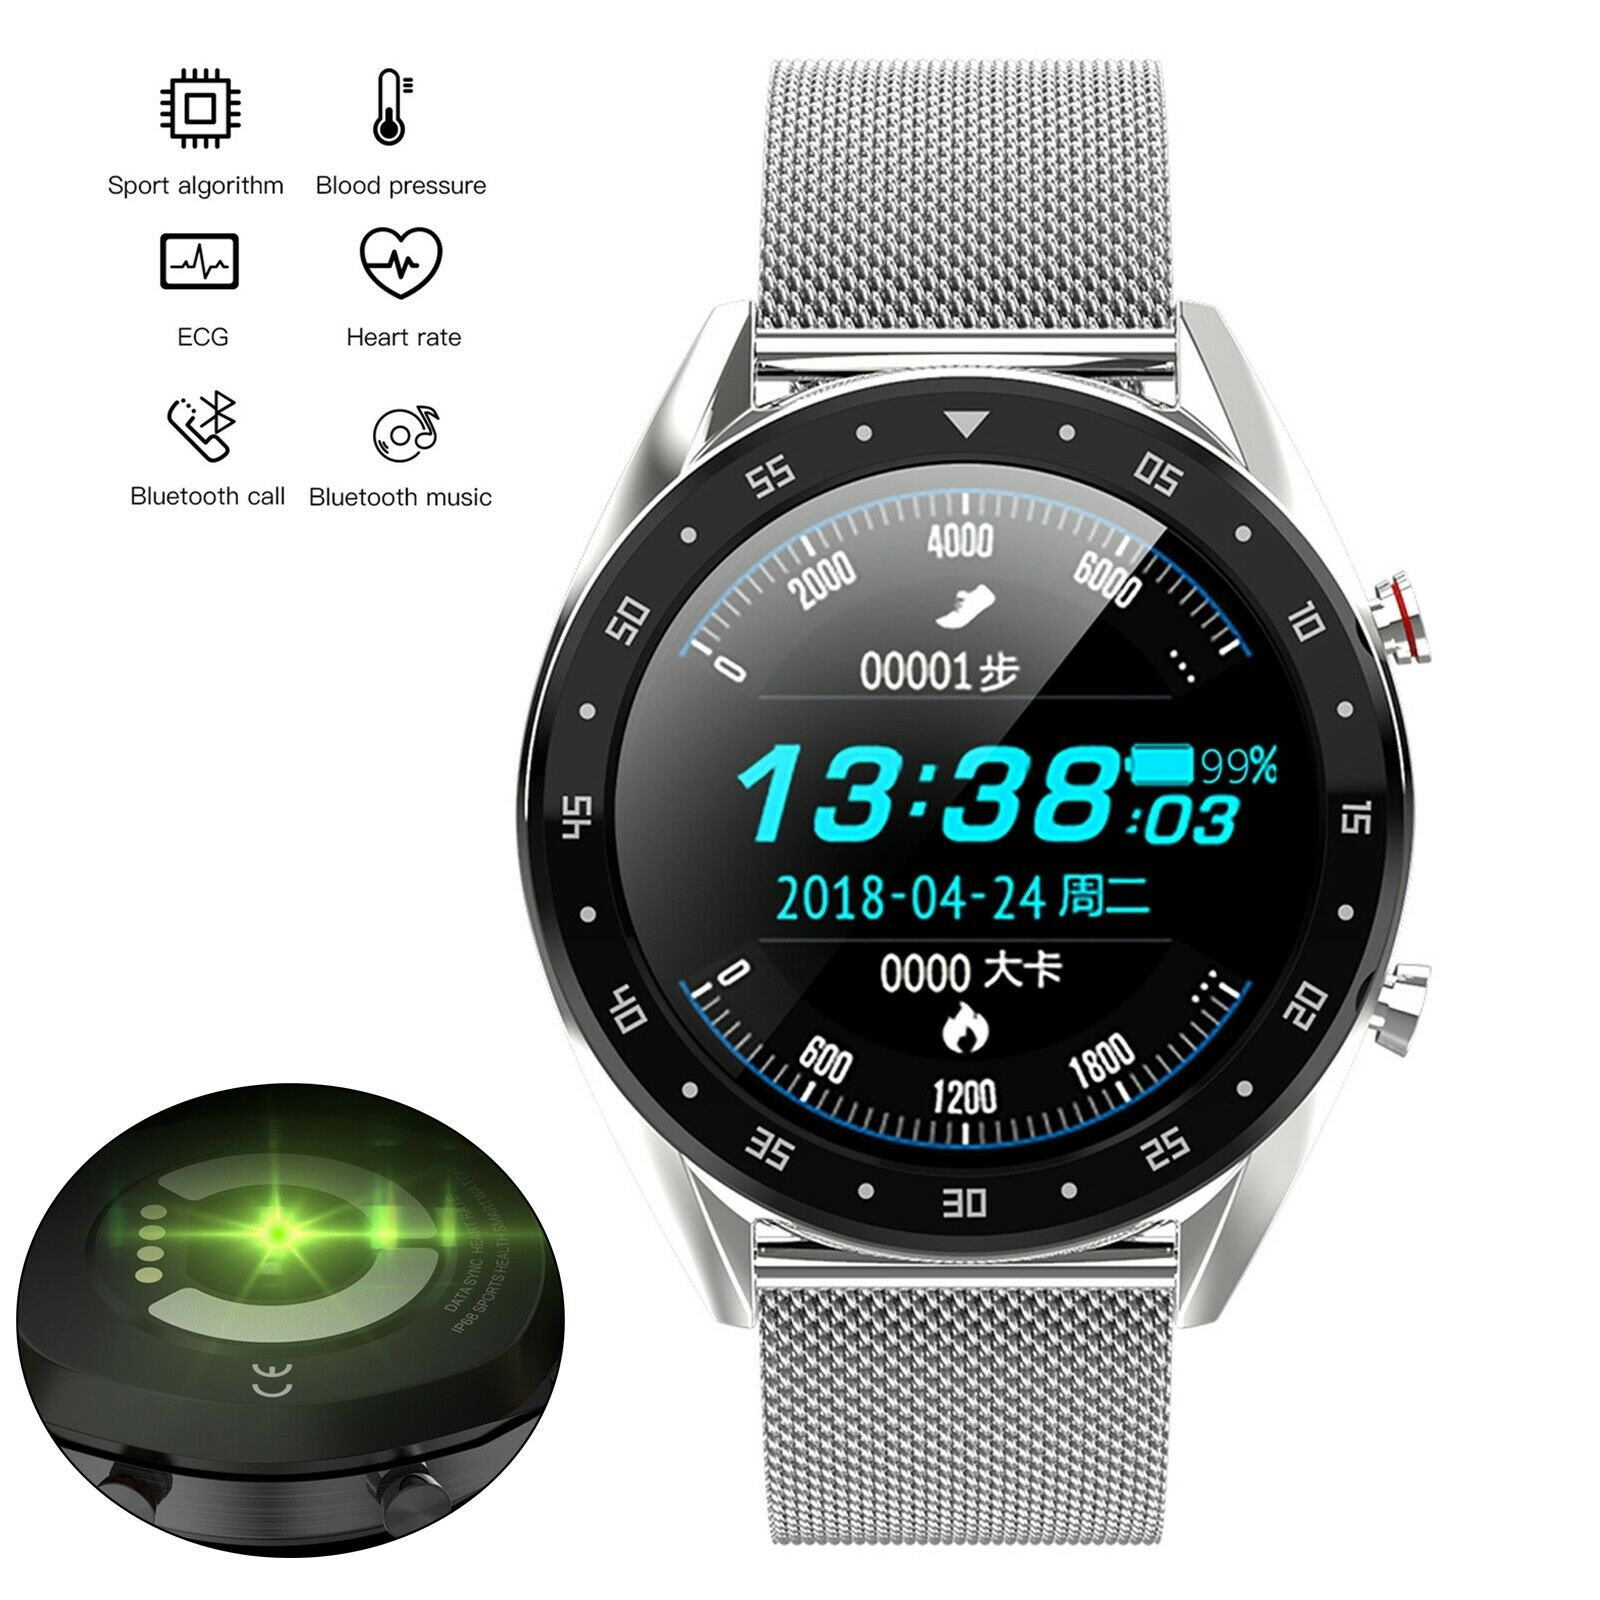 Bluetooth SmartWatch Remote Camera Blood Pressure Monitor Phone Mate for Android blood bluetooth camera Featured for mate monitor phone pressure remote smartwatch